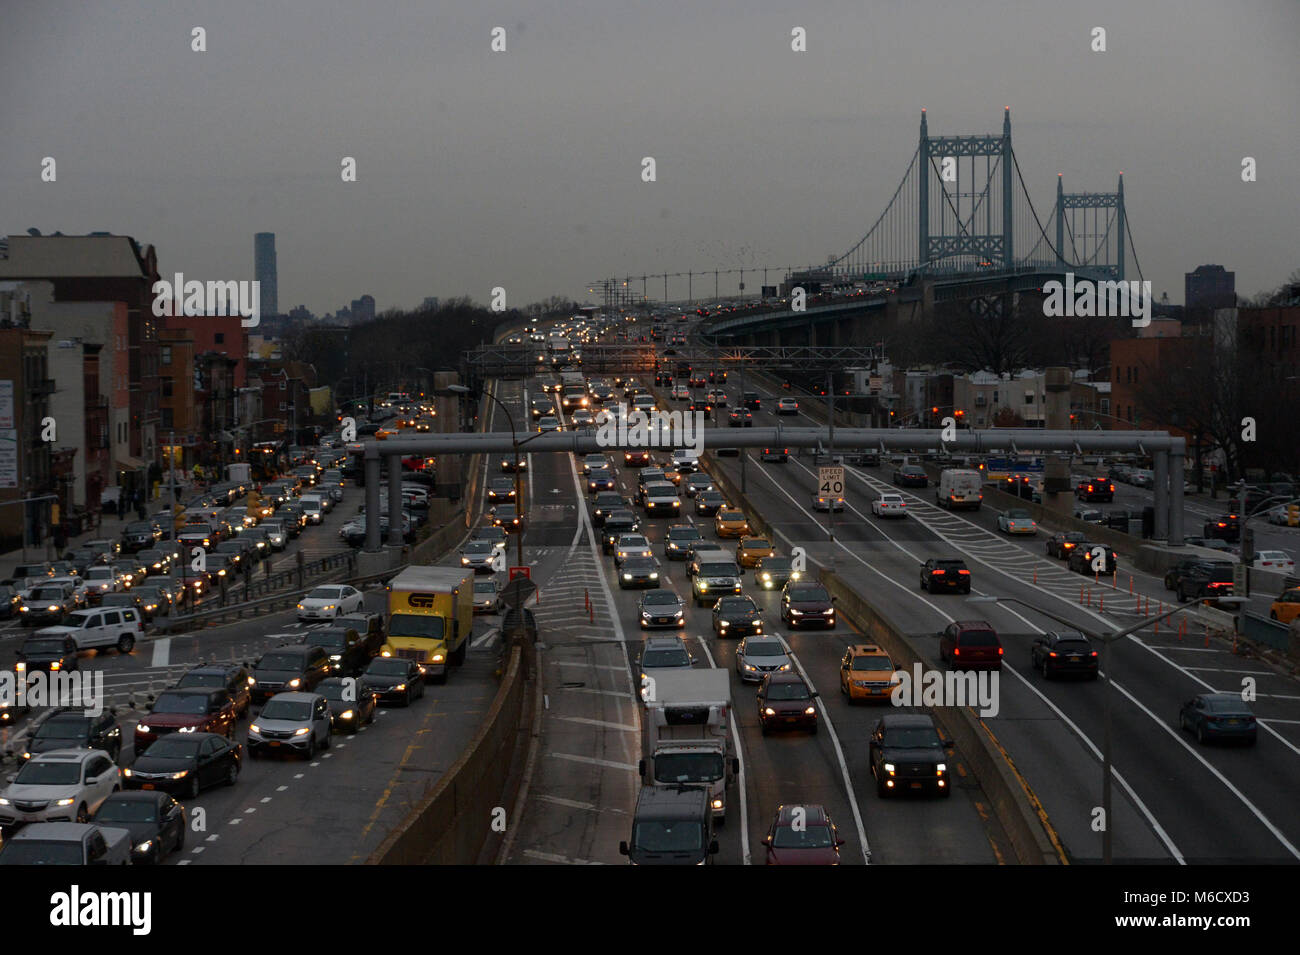 New York City, USA - March 1, 2018: Evening rush hour traffic at Queens-bound lanes of the Grand Central Parkway - Stock Image